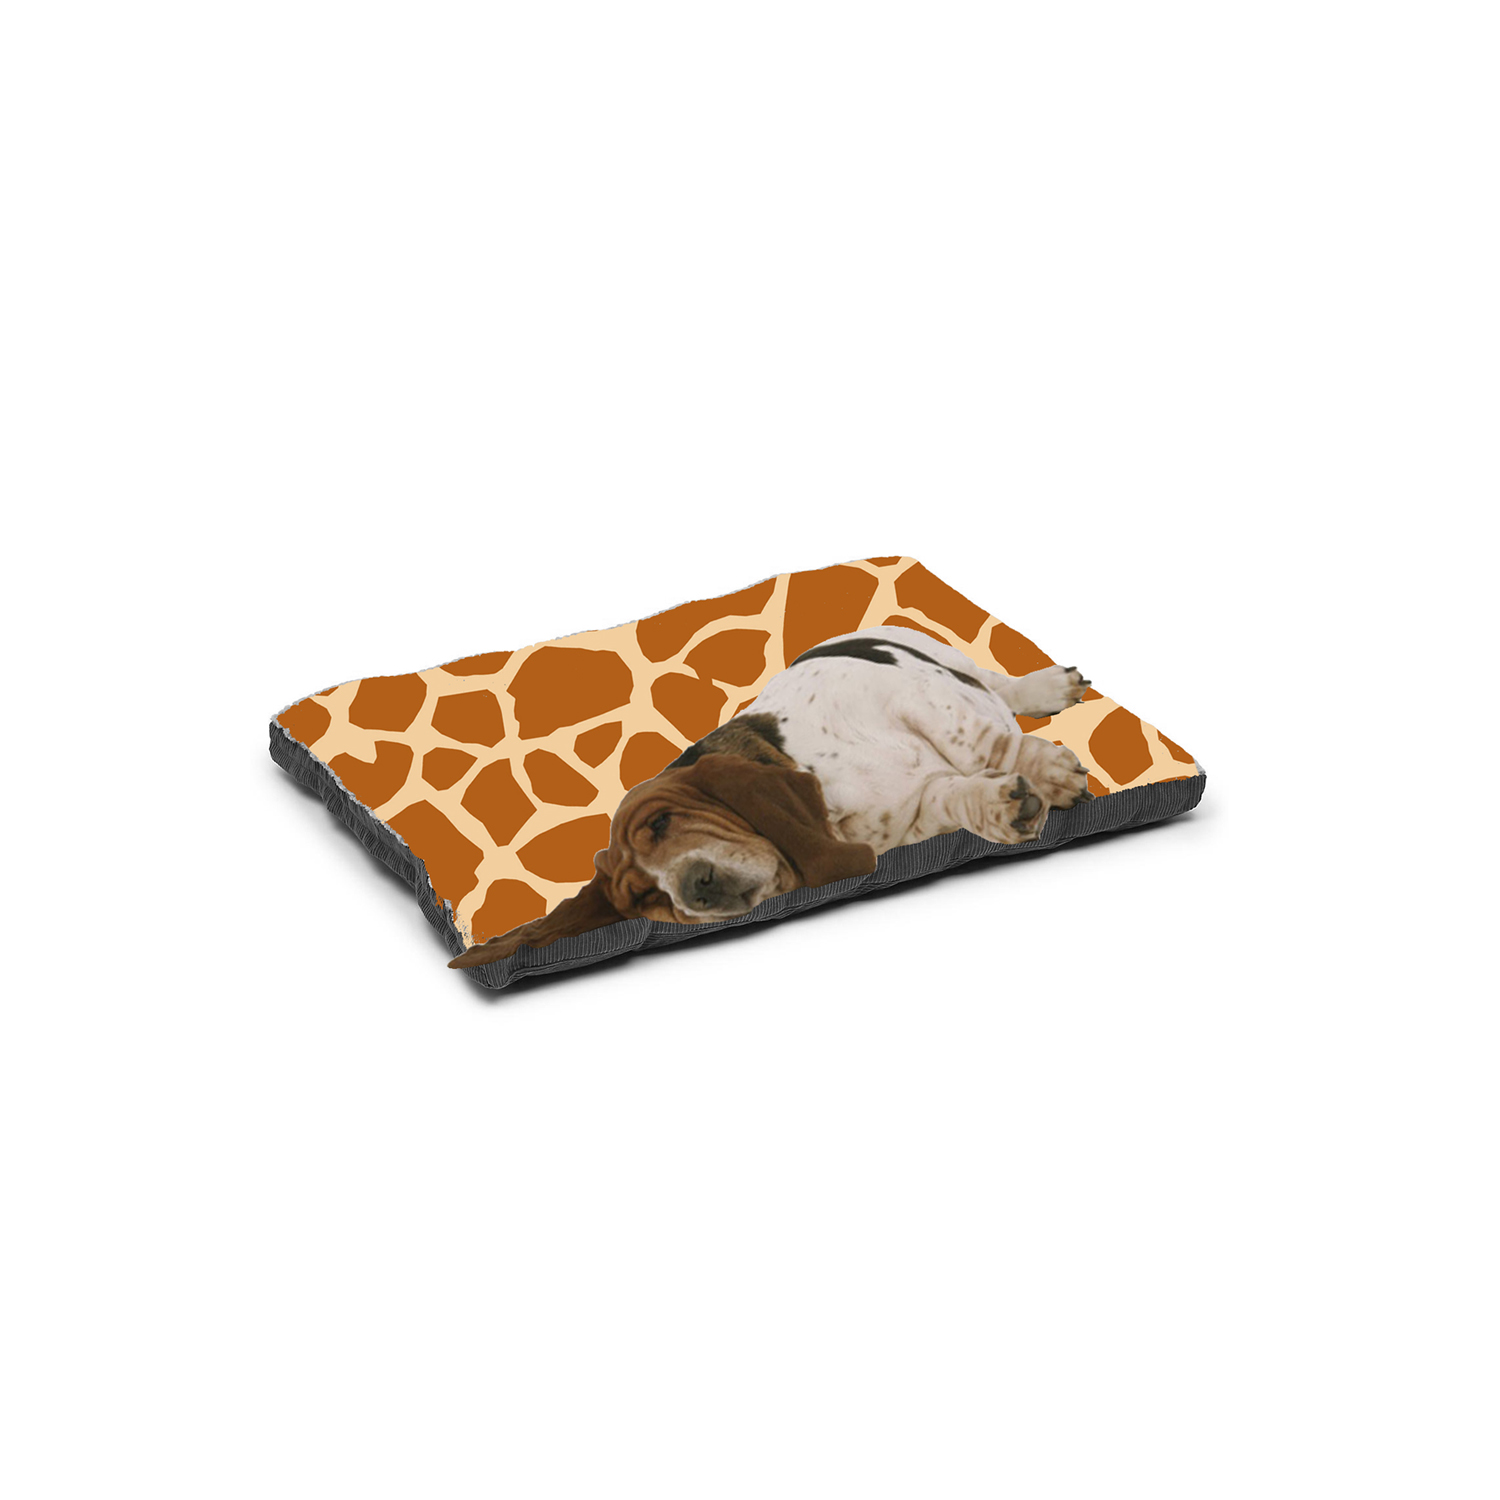 Vetbed Dog and Cat Bedding (Giraffe) 26 x 20